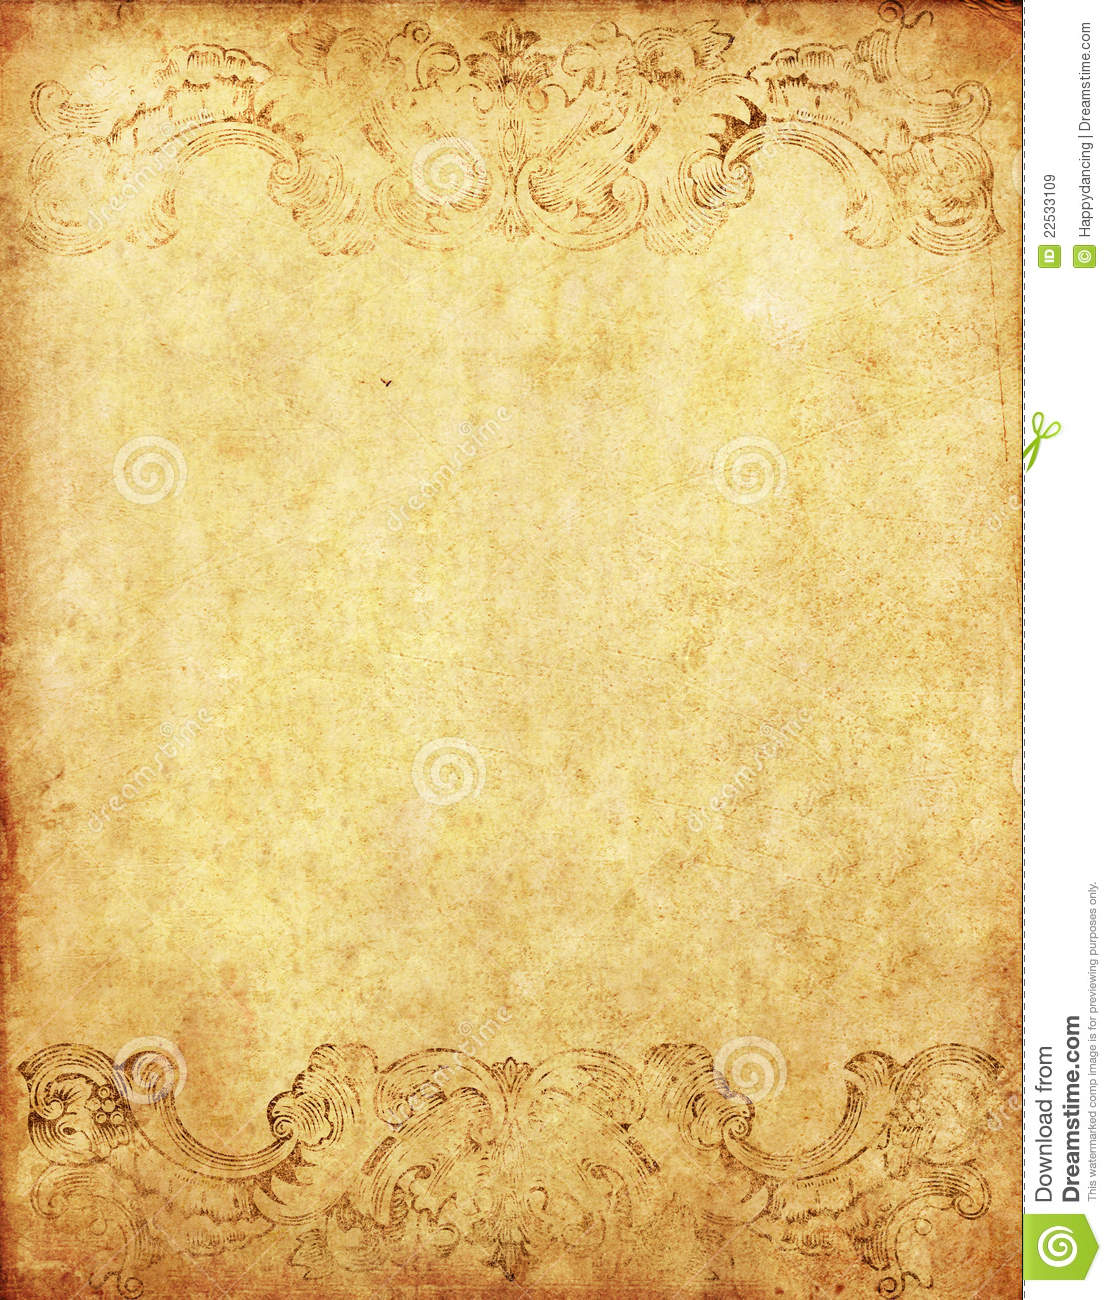 Old Grunge Paper Background Royalty Free Stock Images ...